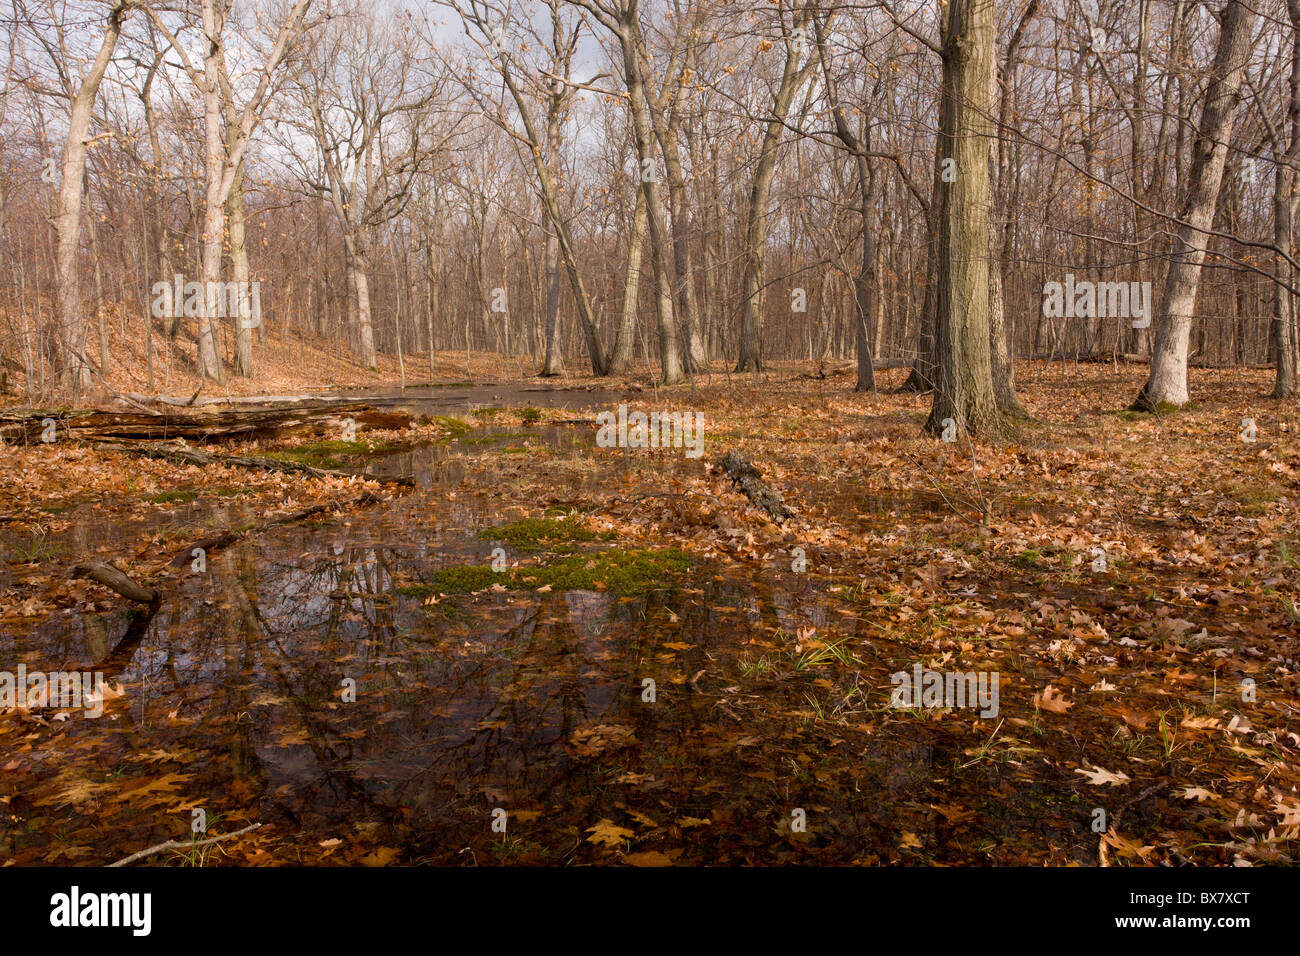 White Oak and Northern Red Oak woodland in Peebles Island State Park, Albany, New York. - Stock Image